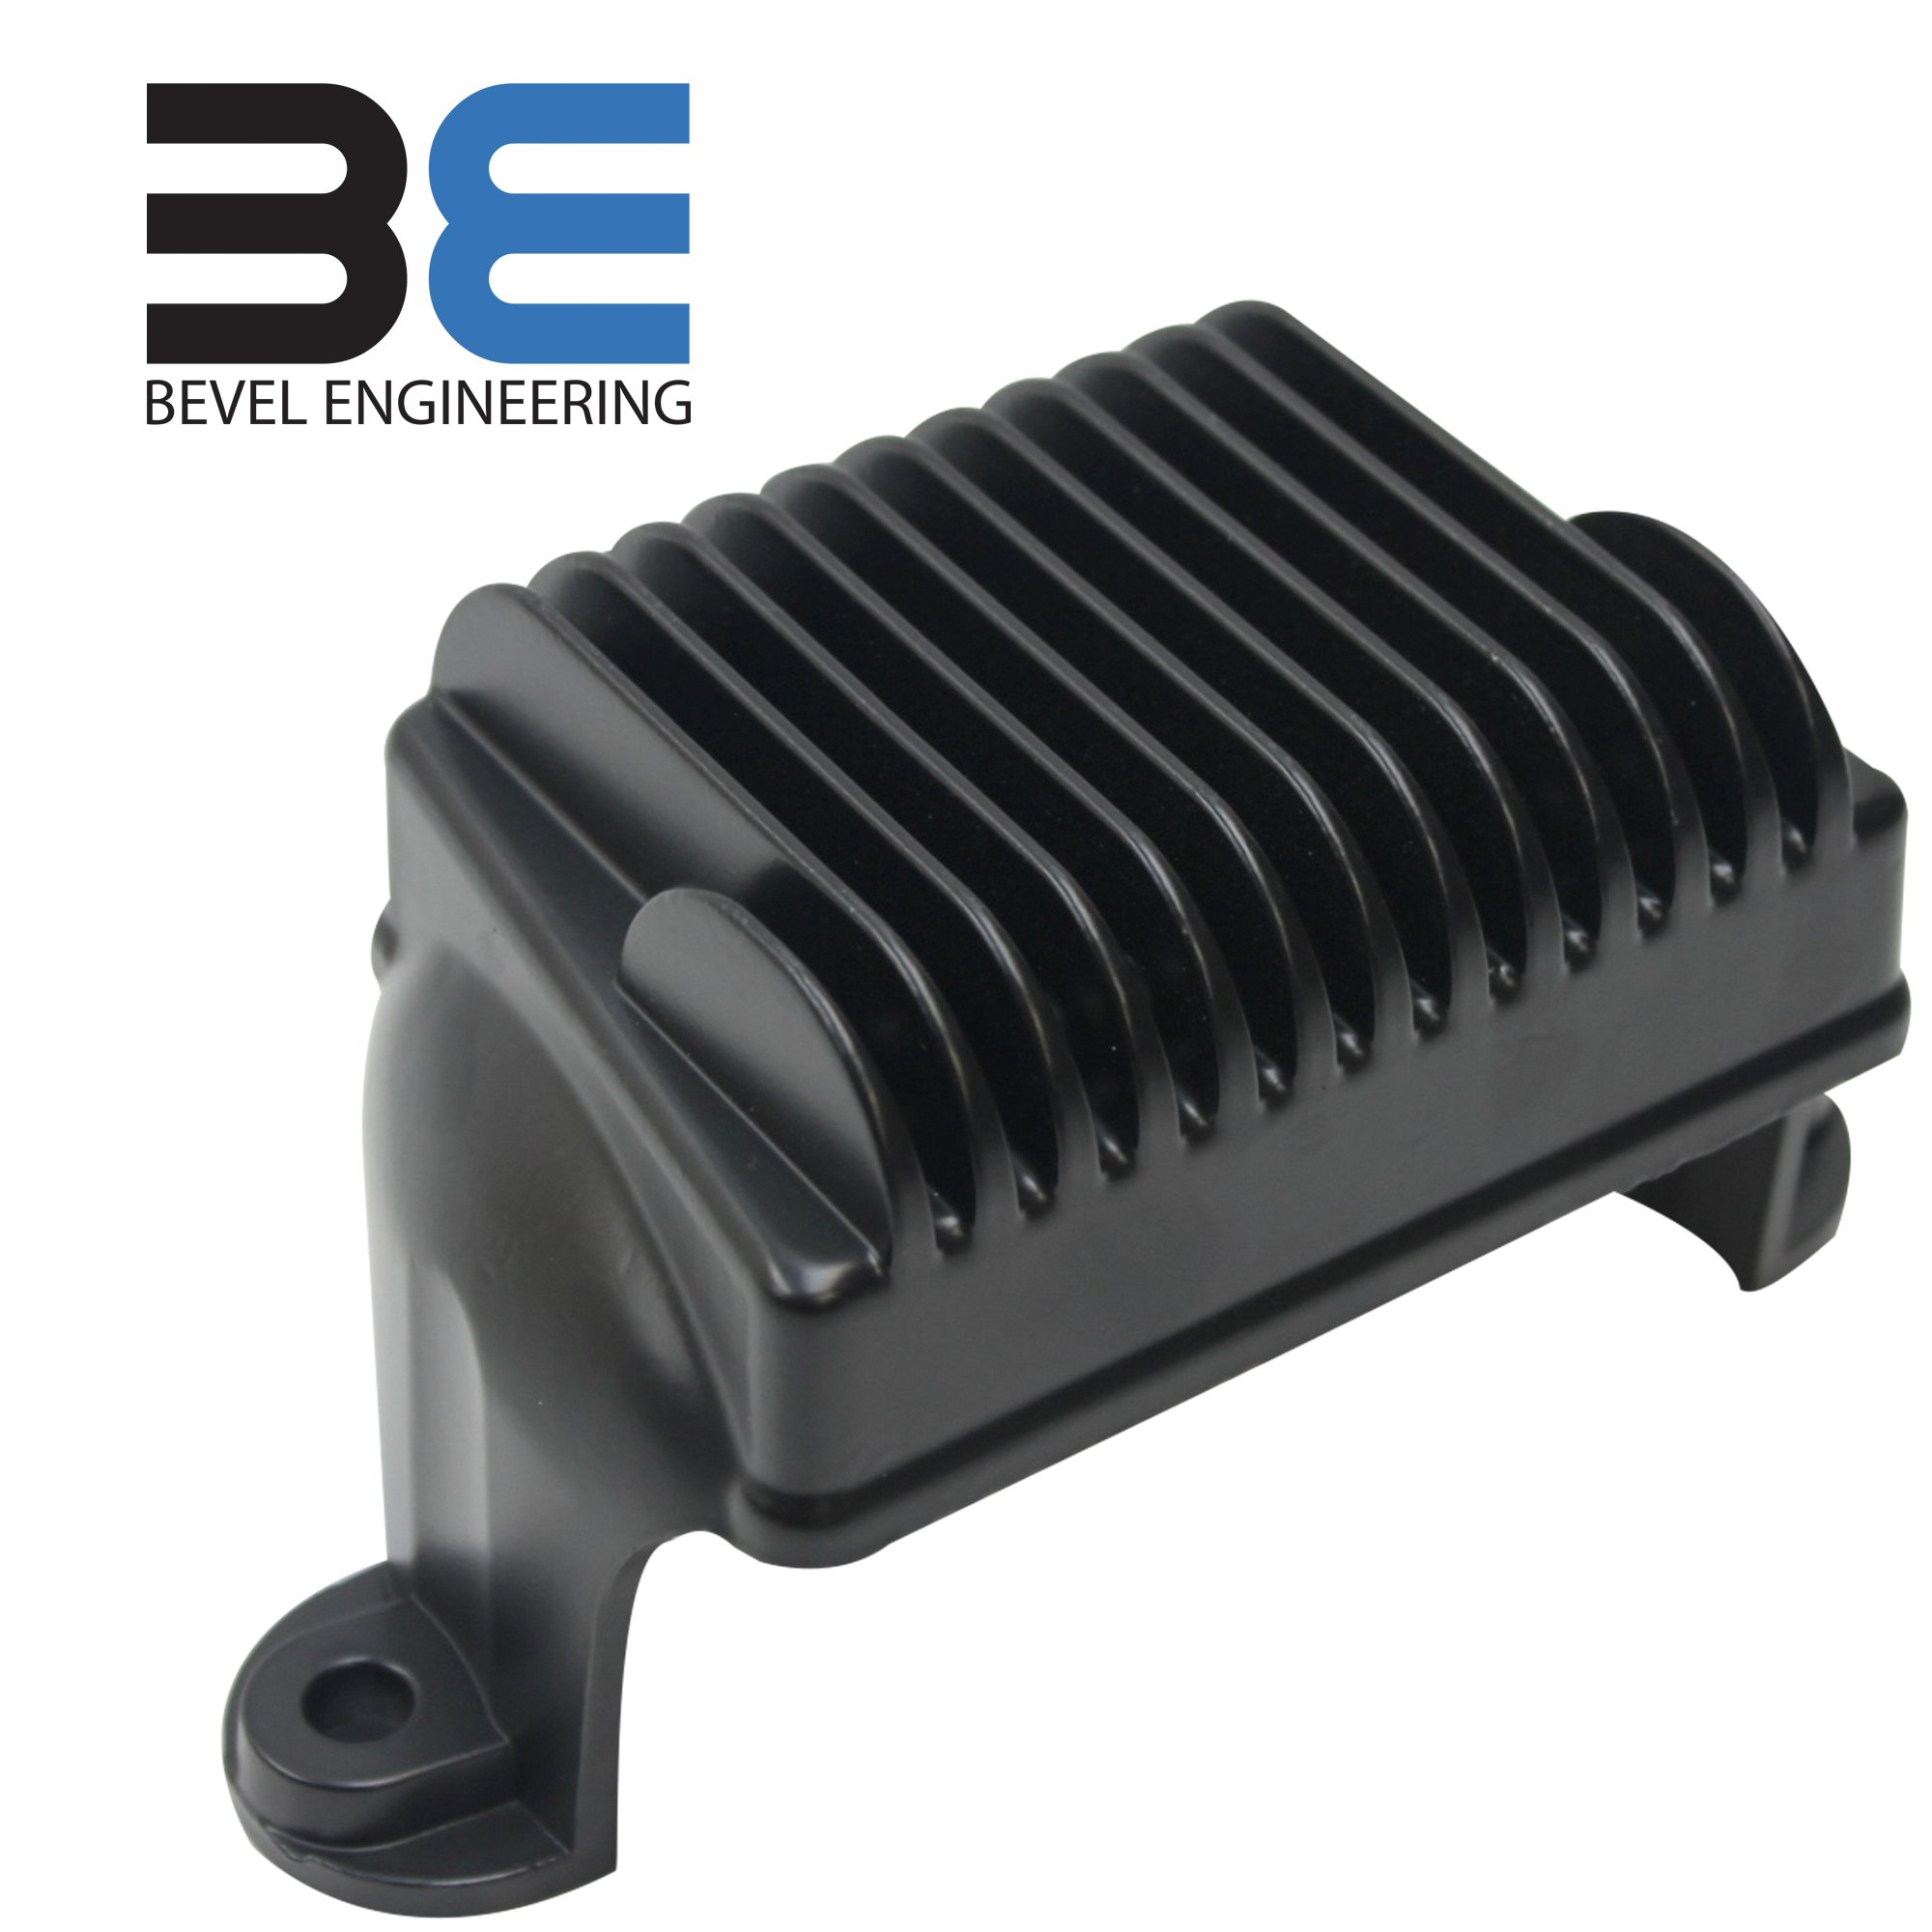 Bevel Engineering Upgraded Voltage Rectifier Regulator for 09-15 Harley Davidson Touring Models Replaces 74505-09 74505-09a by Bevel Engineering